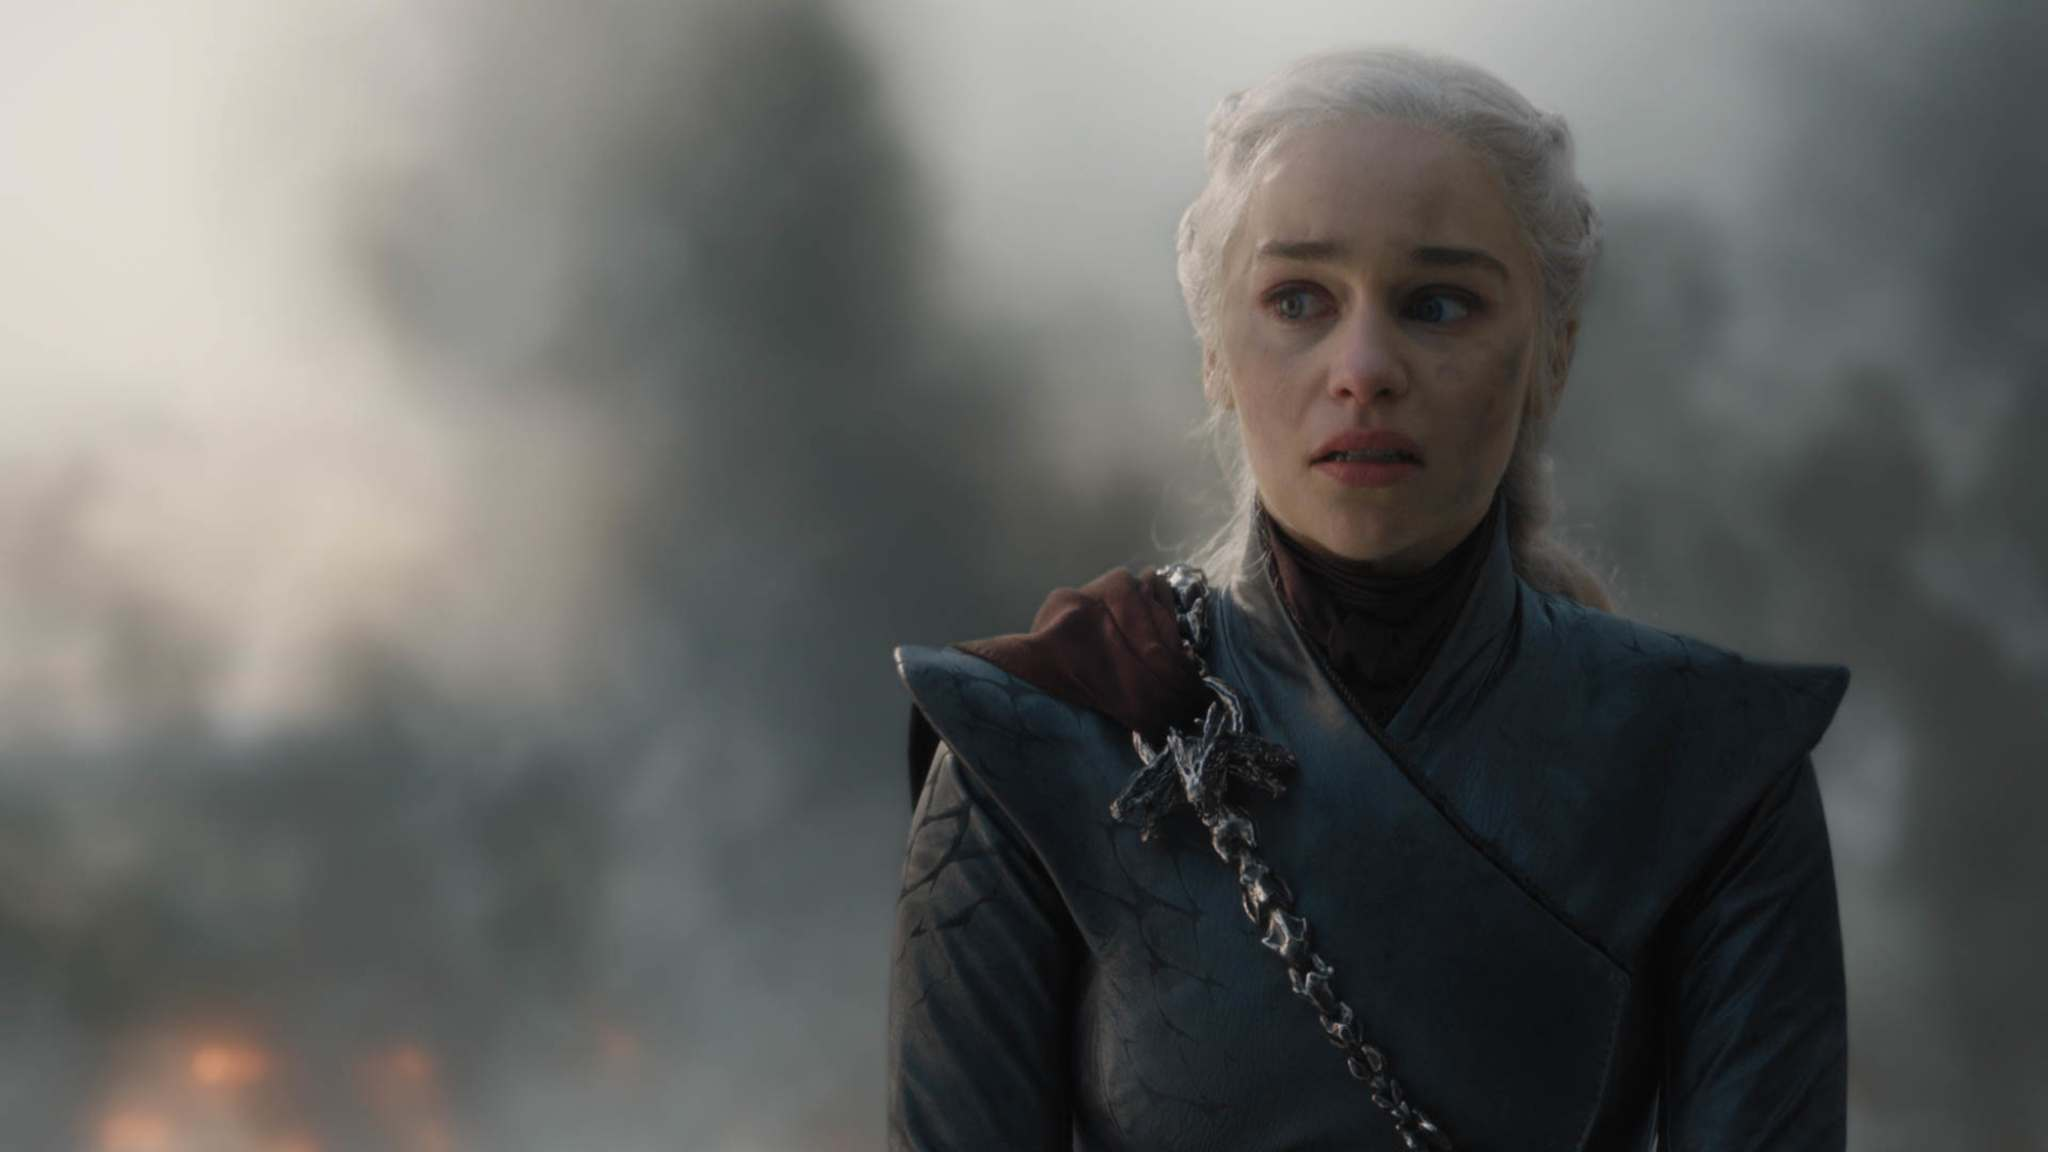 Daenerys (Emilia Clarke) decided to use fear as her weapon. (HBO)